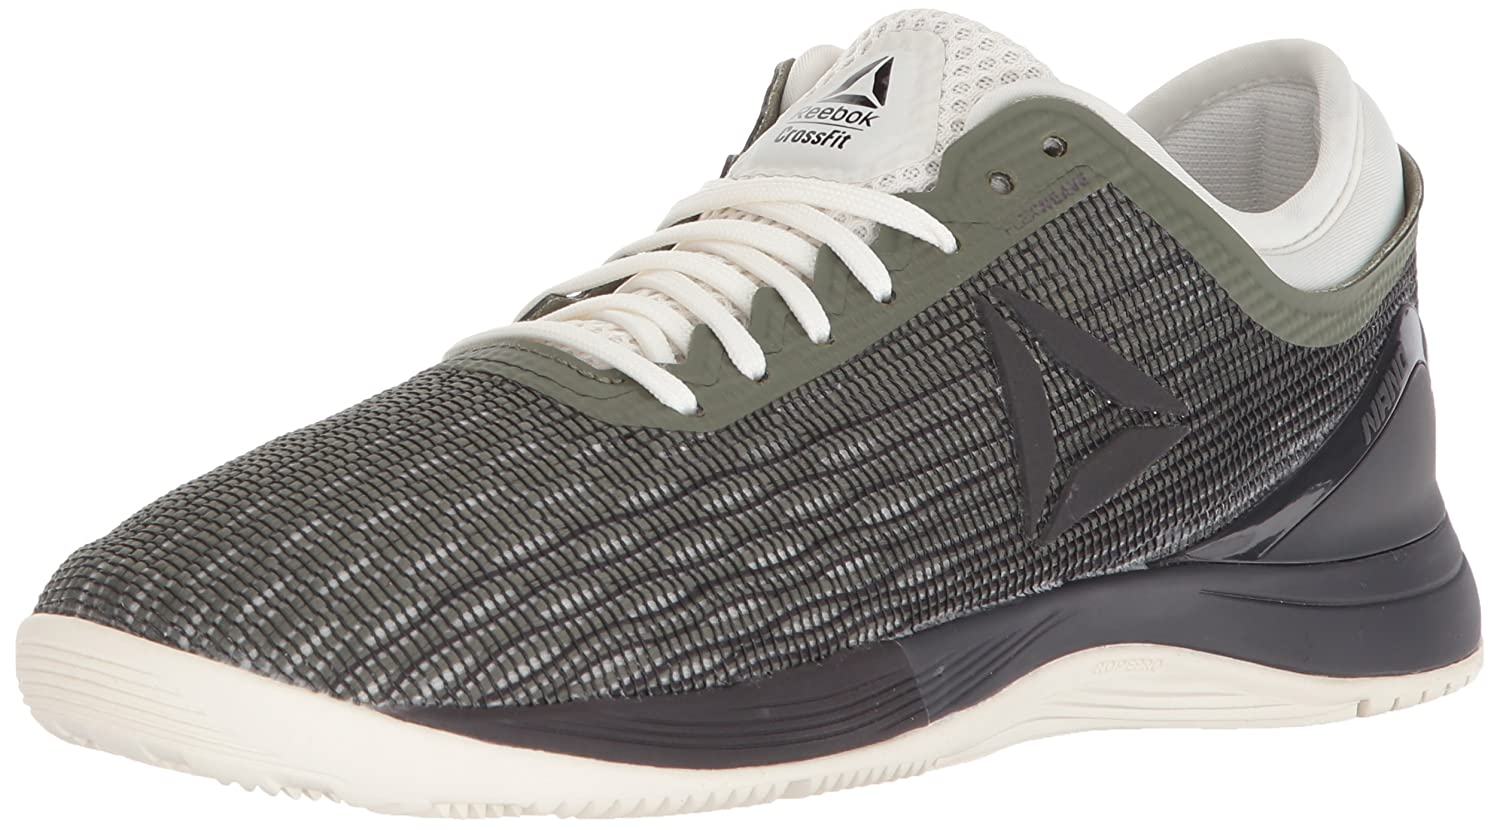 Reebok Women's Crossfit Nano 8.0 Flexweave Cross Trainer B076HVY1HL 8.5 B(M) US|Hunter Green/Coal/Chalk